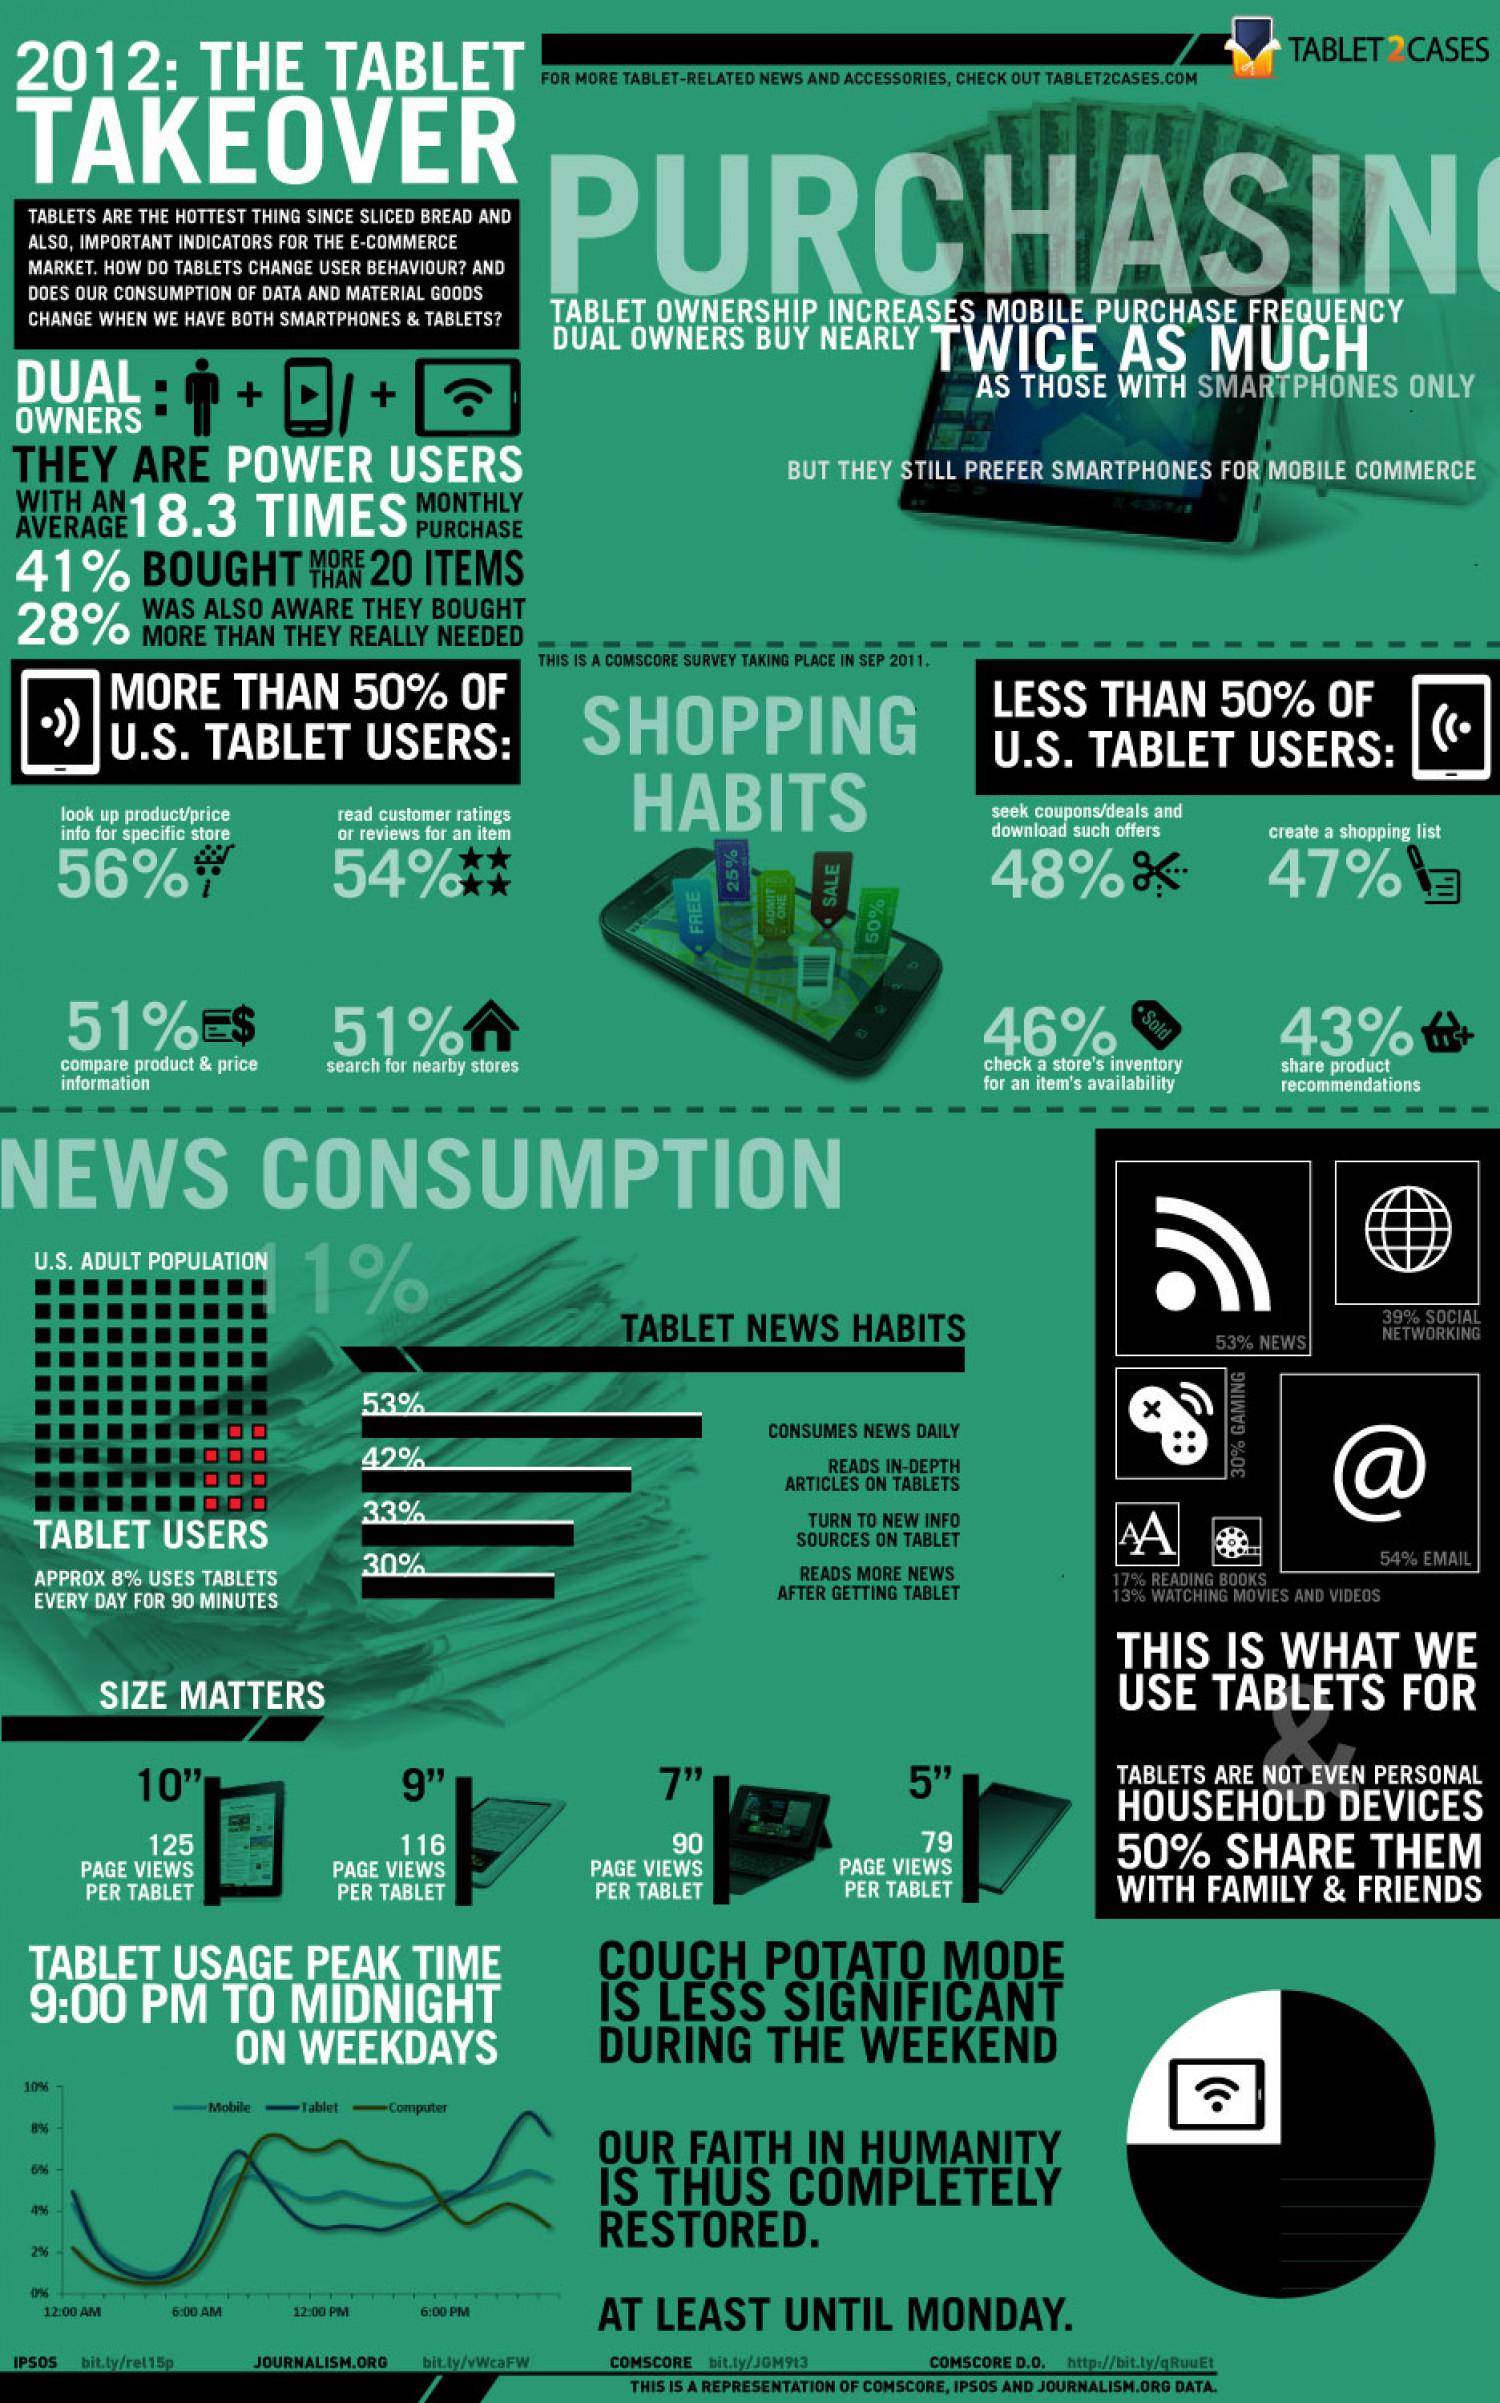 2012 The Tablet Takeover Infographic